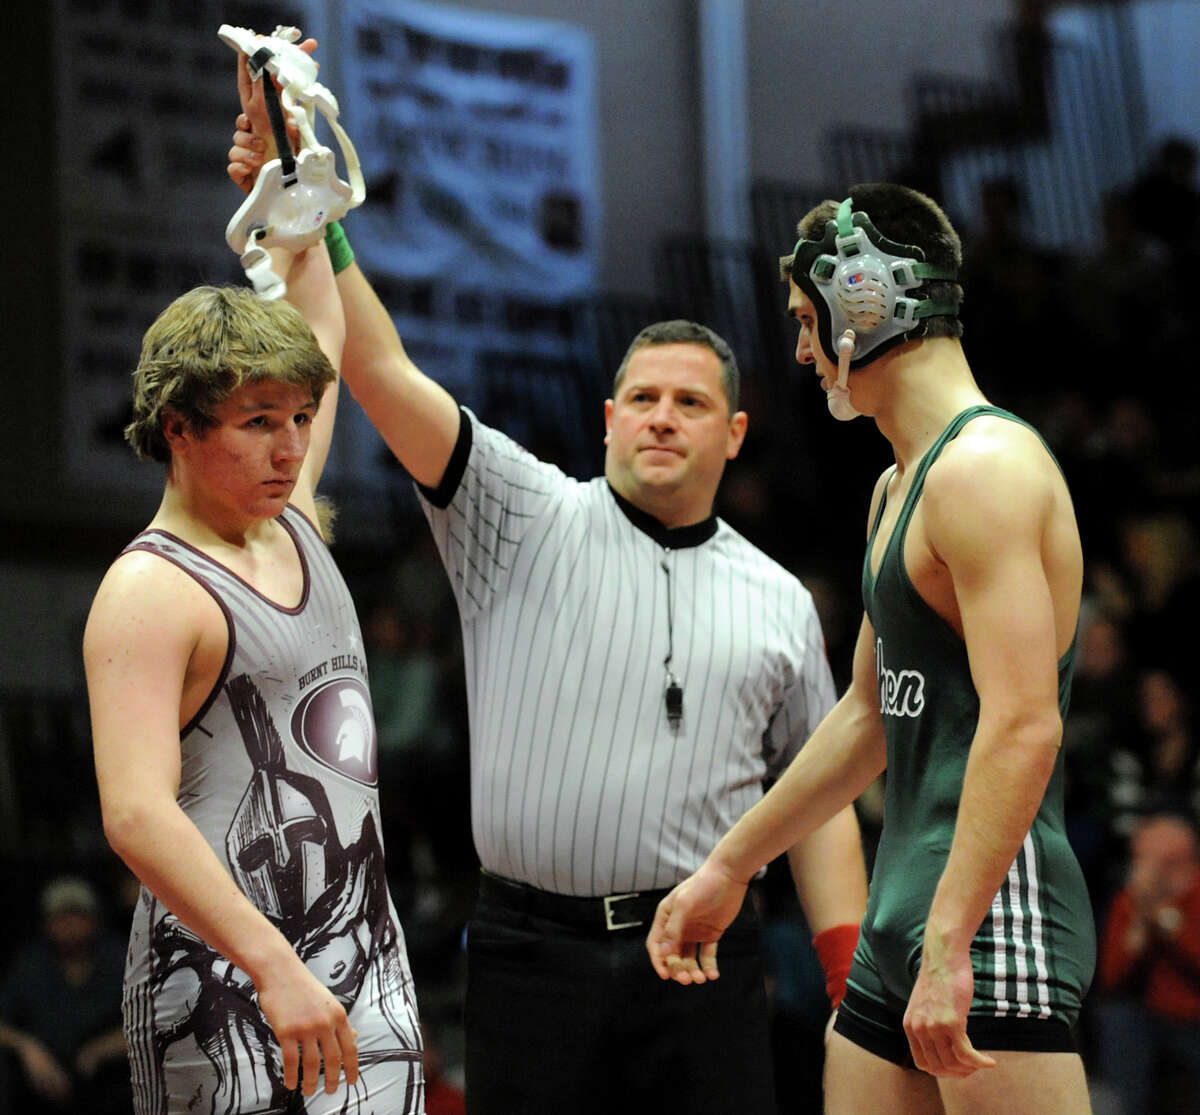 Burnt Hills' Jack Hatton, left, is declared the winner against Shenendehowa's Bryant Gallagher at 170 pounds during their match on Saturday, Dec. 22, 2012, at Burnt Hills High in Burnt Hills, N.Y. Hatton wins with a pin. (Cindy Schultz / Times Union)